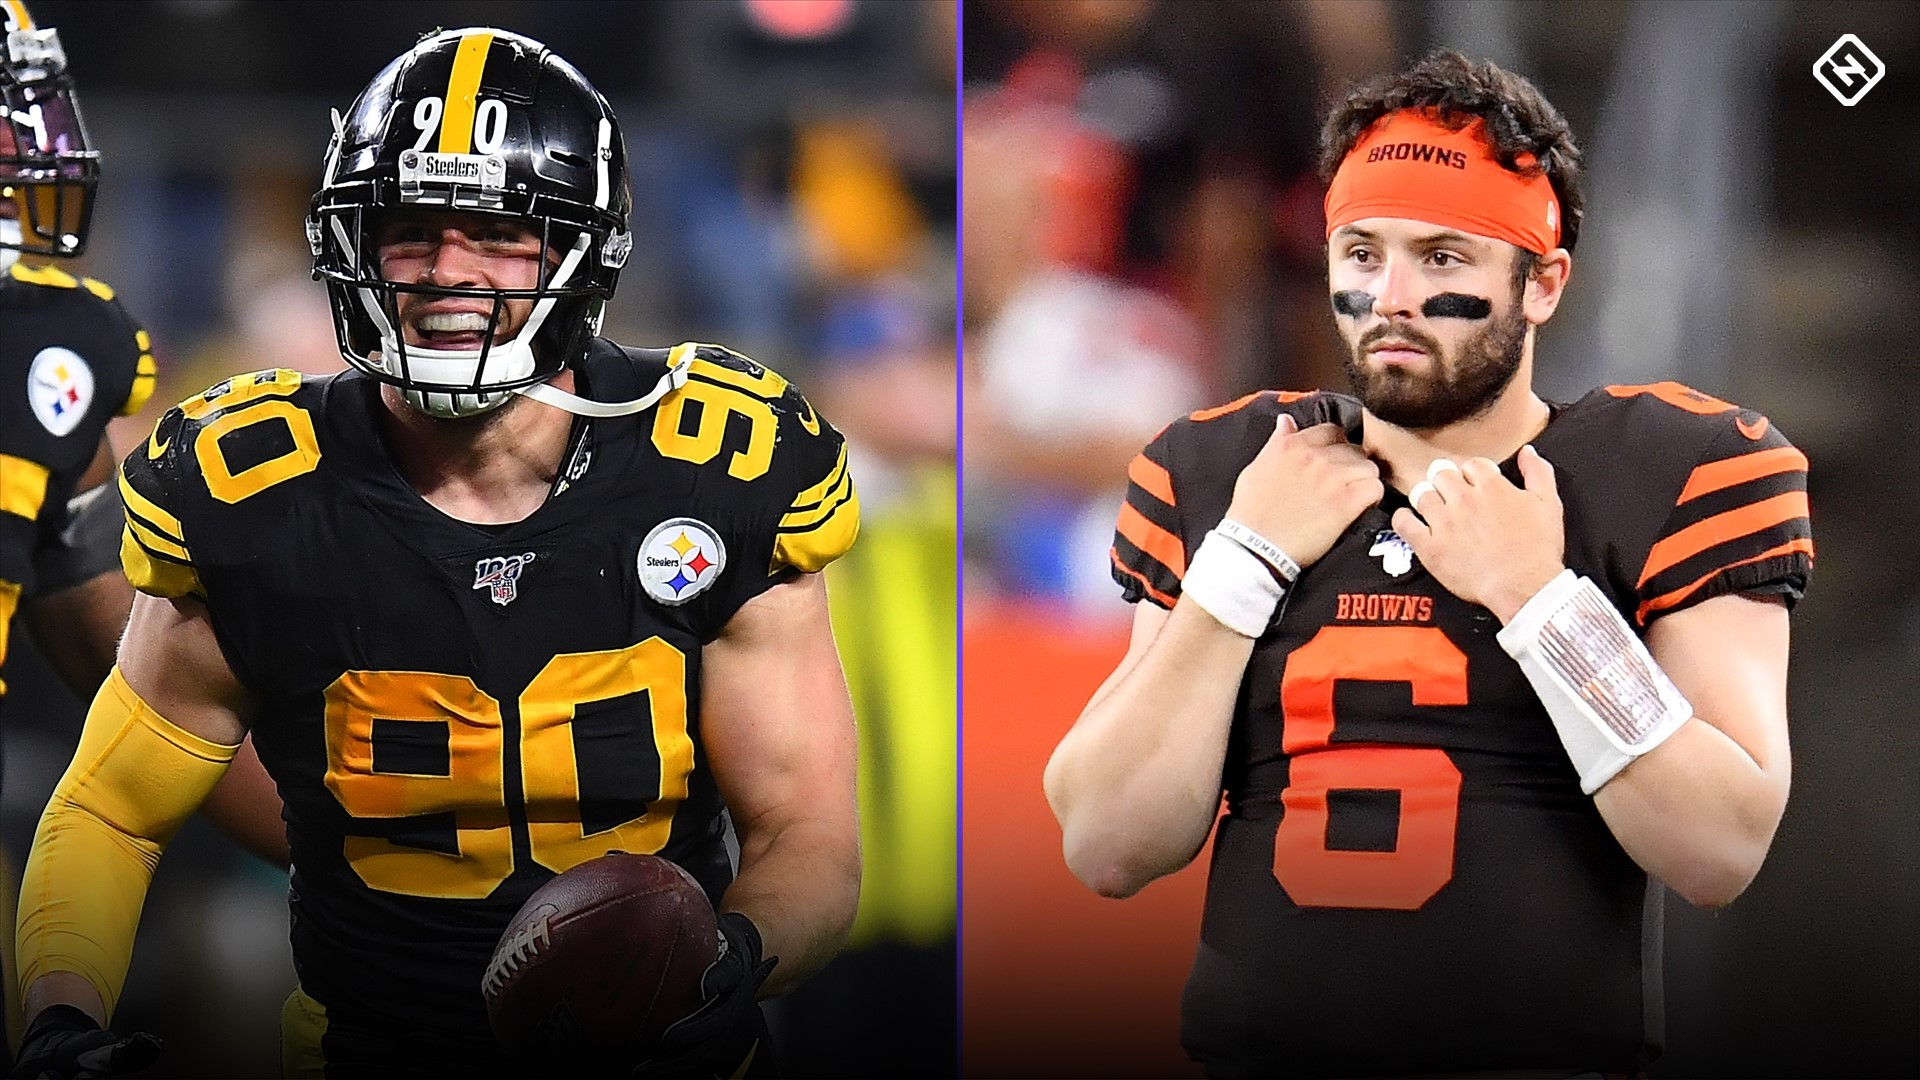 Stability vs. incompetence: Why the Steelers are the Steelers and the Browns are the Browns